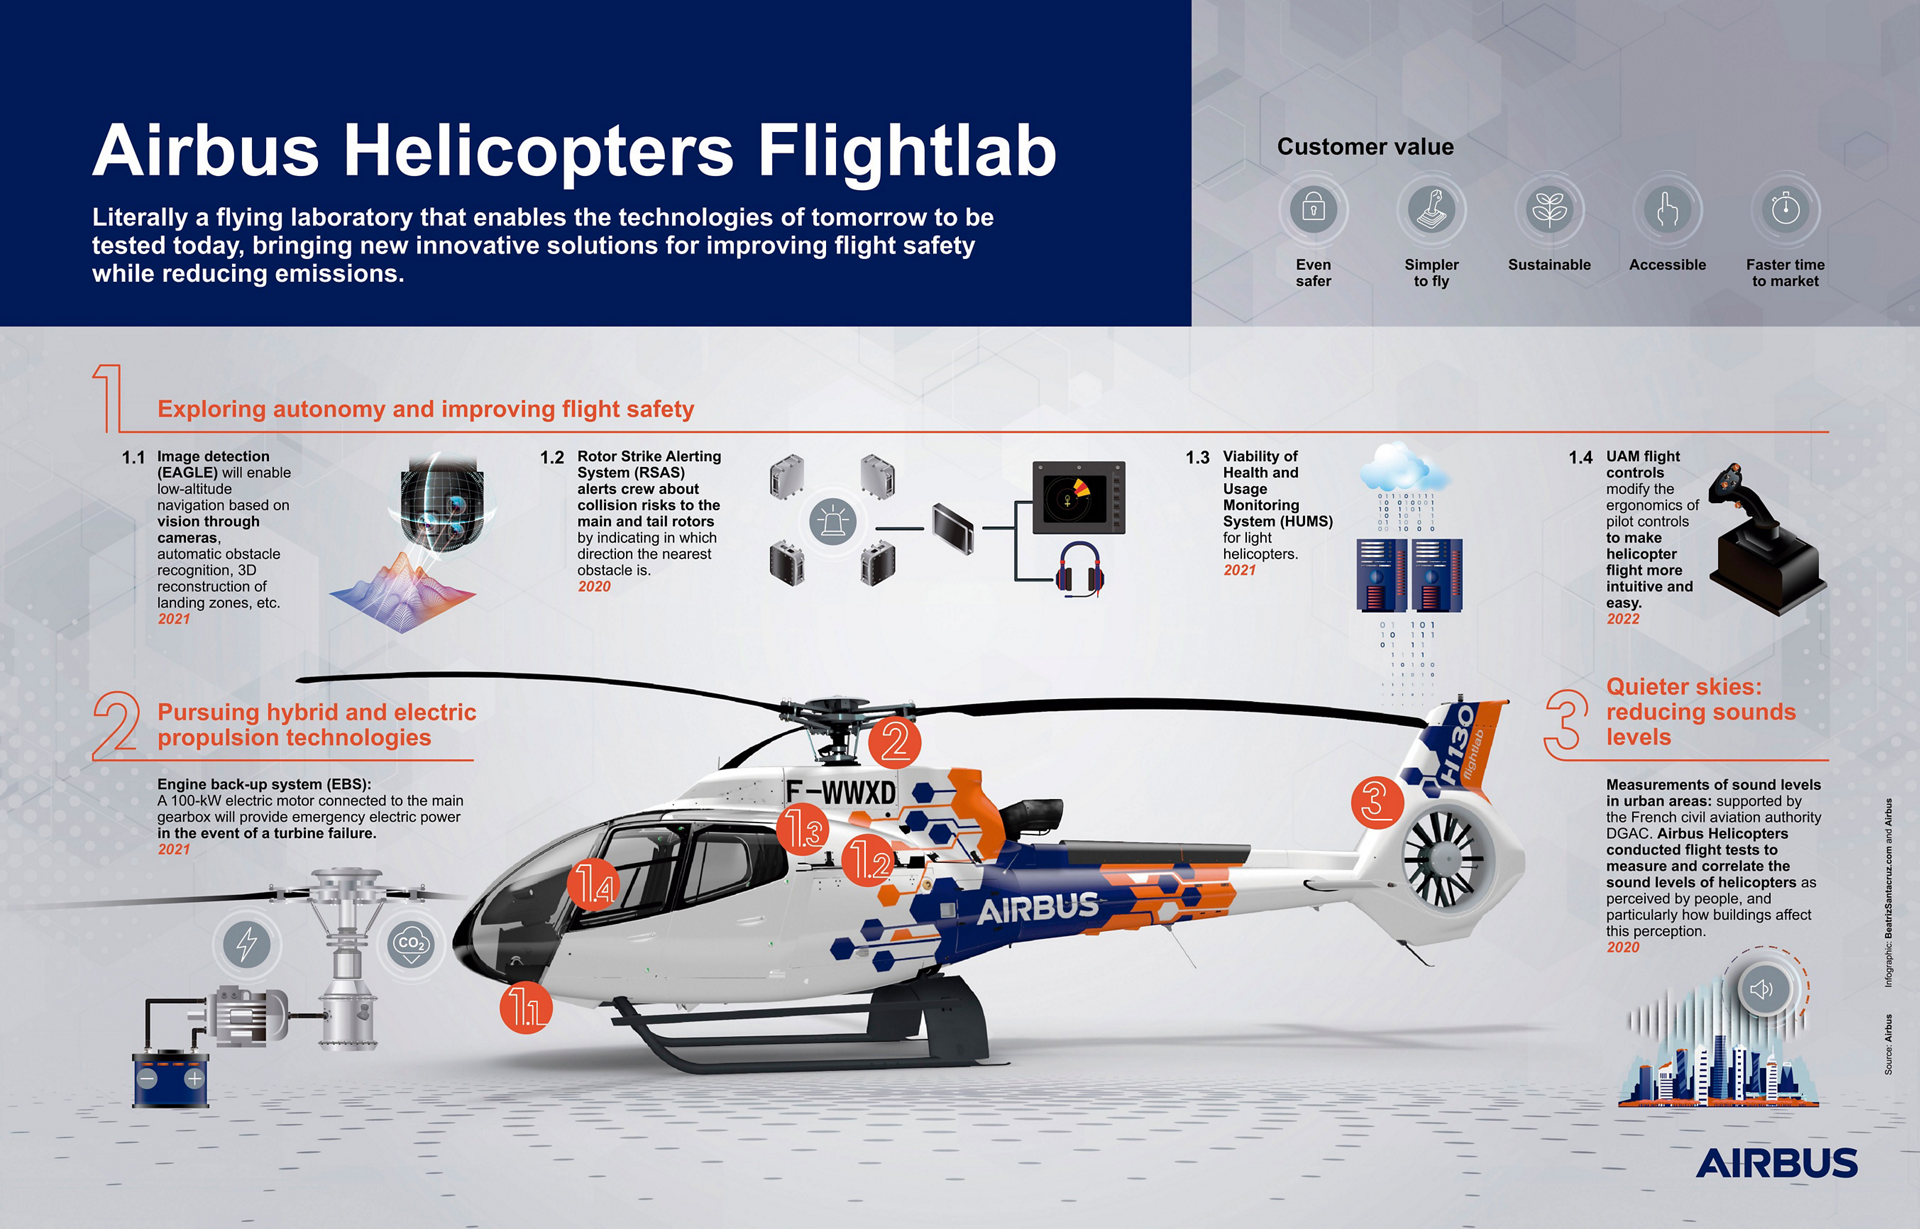 An infographic showing the technologies of tomorrow that can tested today with Airbus Helicopters' Flightlab demonstrator.